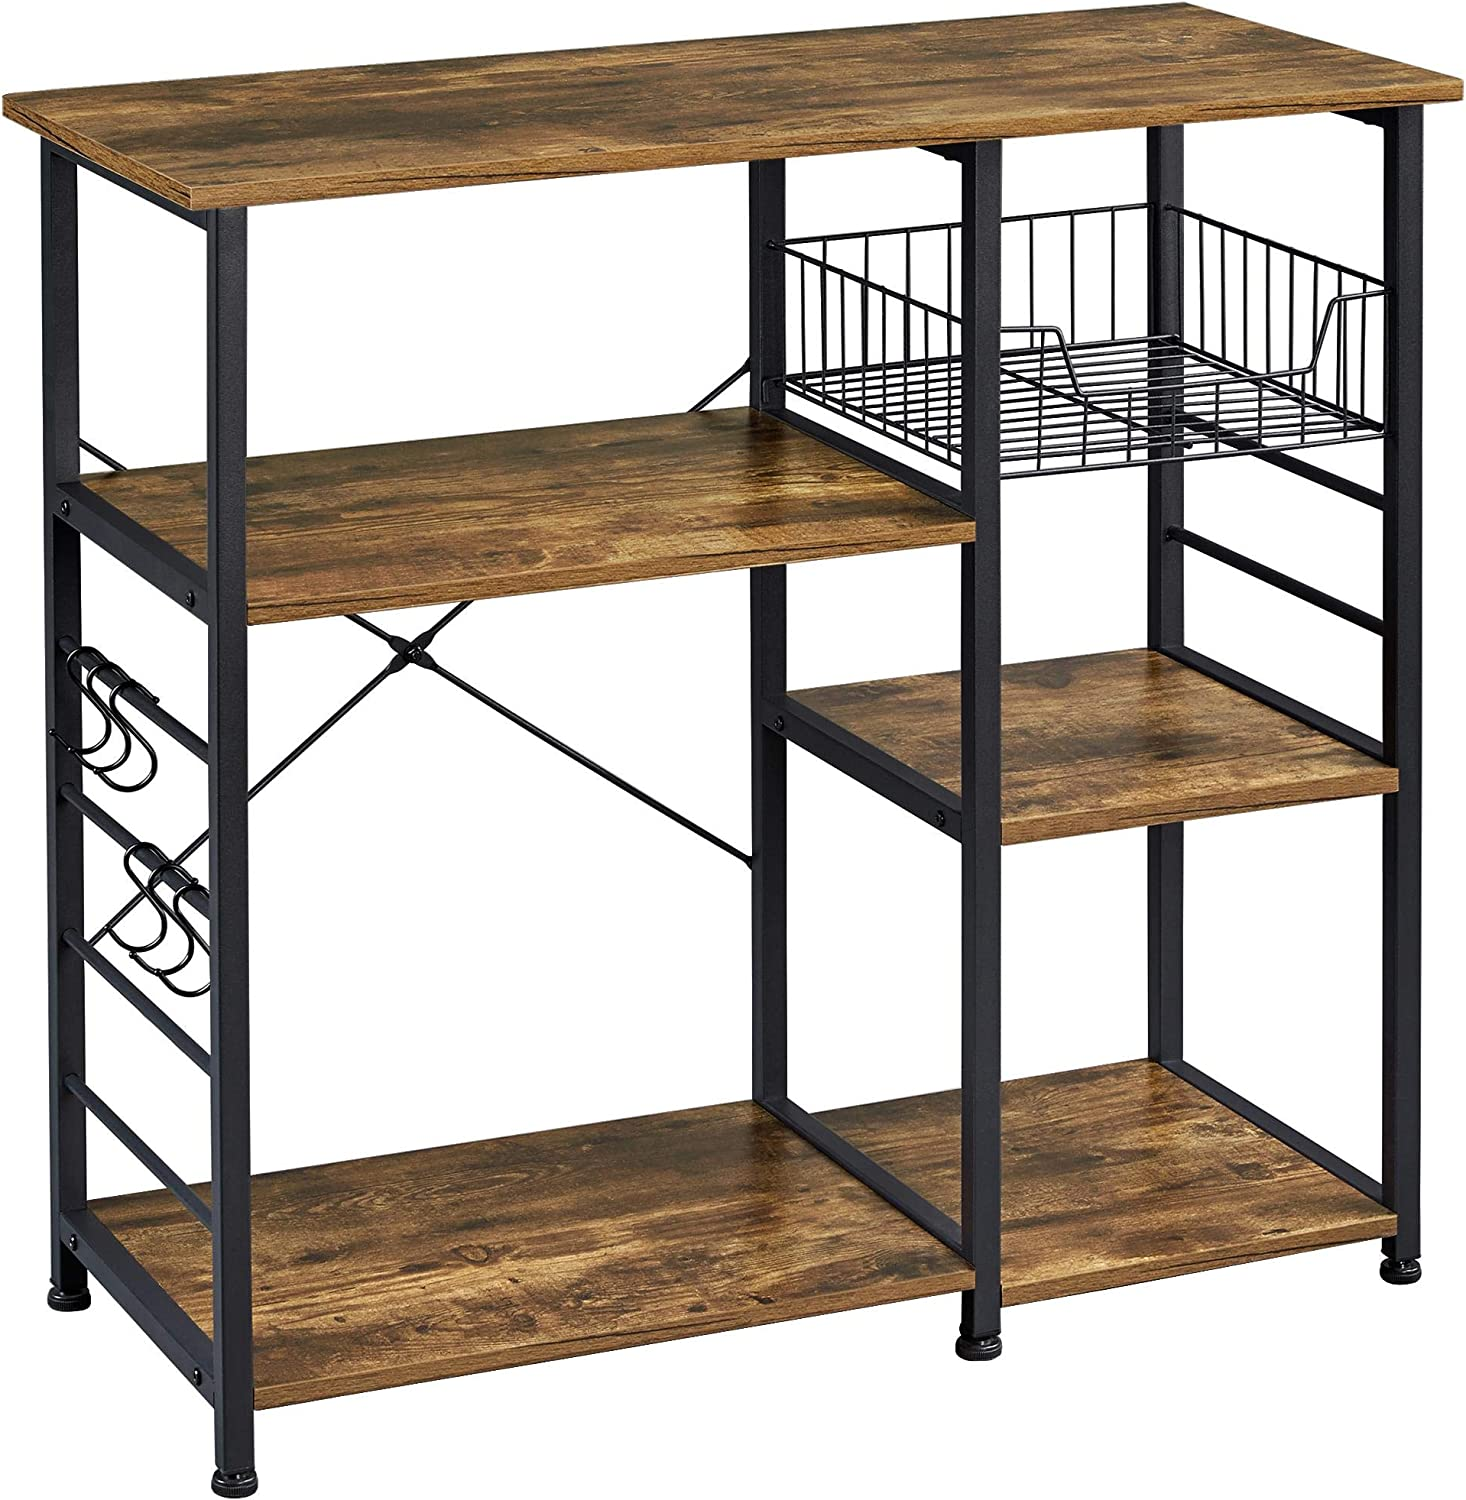 Yaheetech Baker S Rack Industrial Kitchen Island Microwave Storage Rack With Metal Mesh Basket Shelves And 6 Hooks 90x39x84cm Standing Coffee Bar Table Metal Frame Amazon Co Uk Kitchen Home